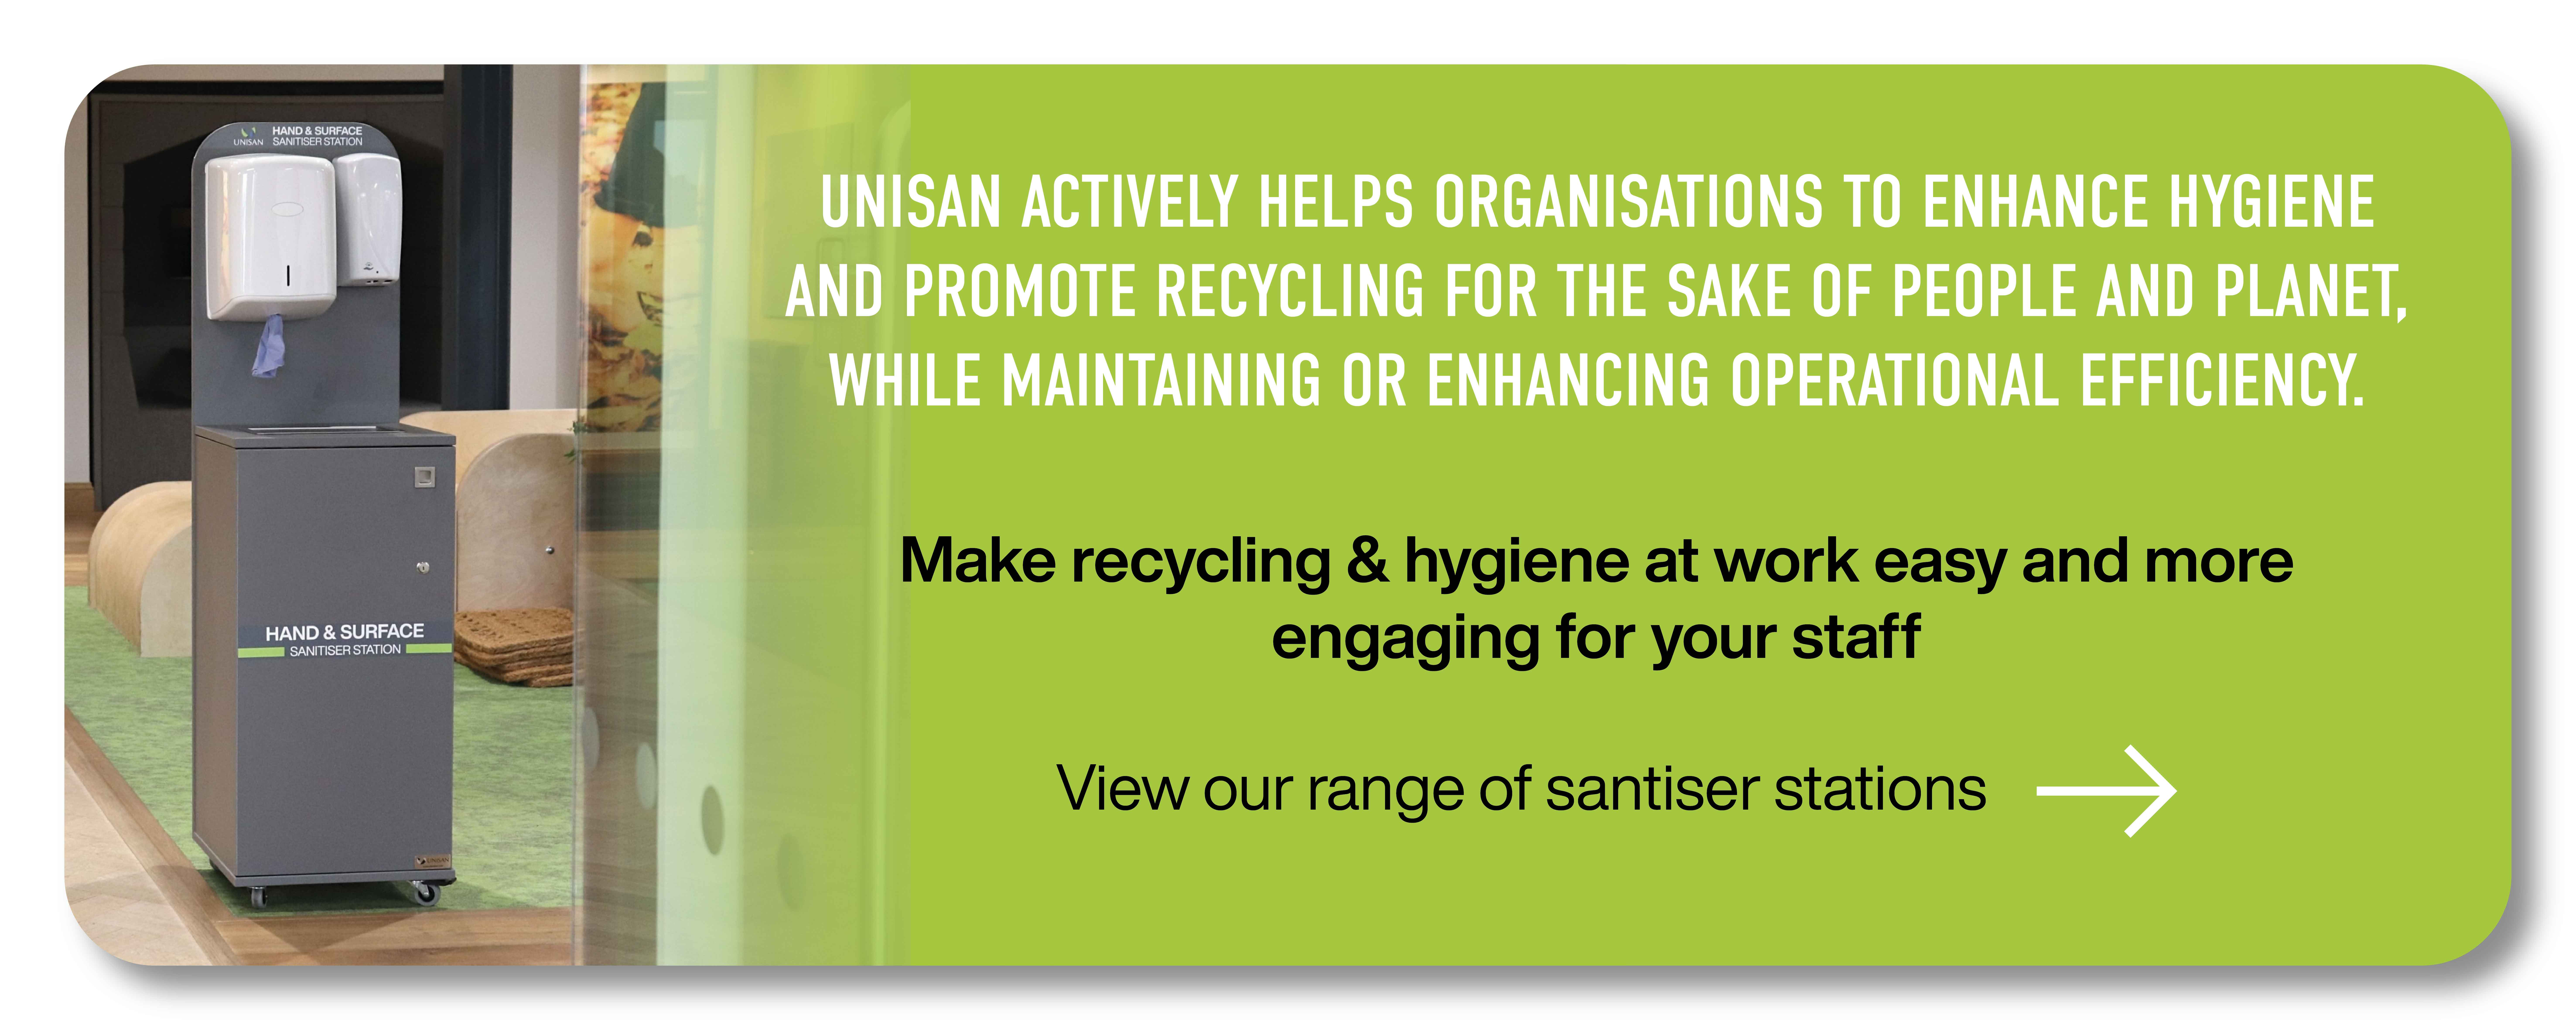 cleaner and greener workplace